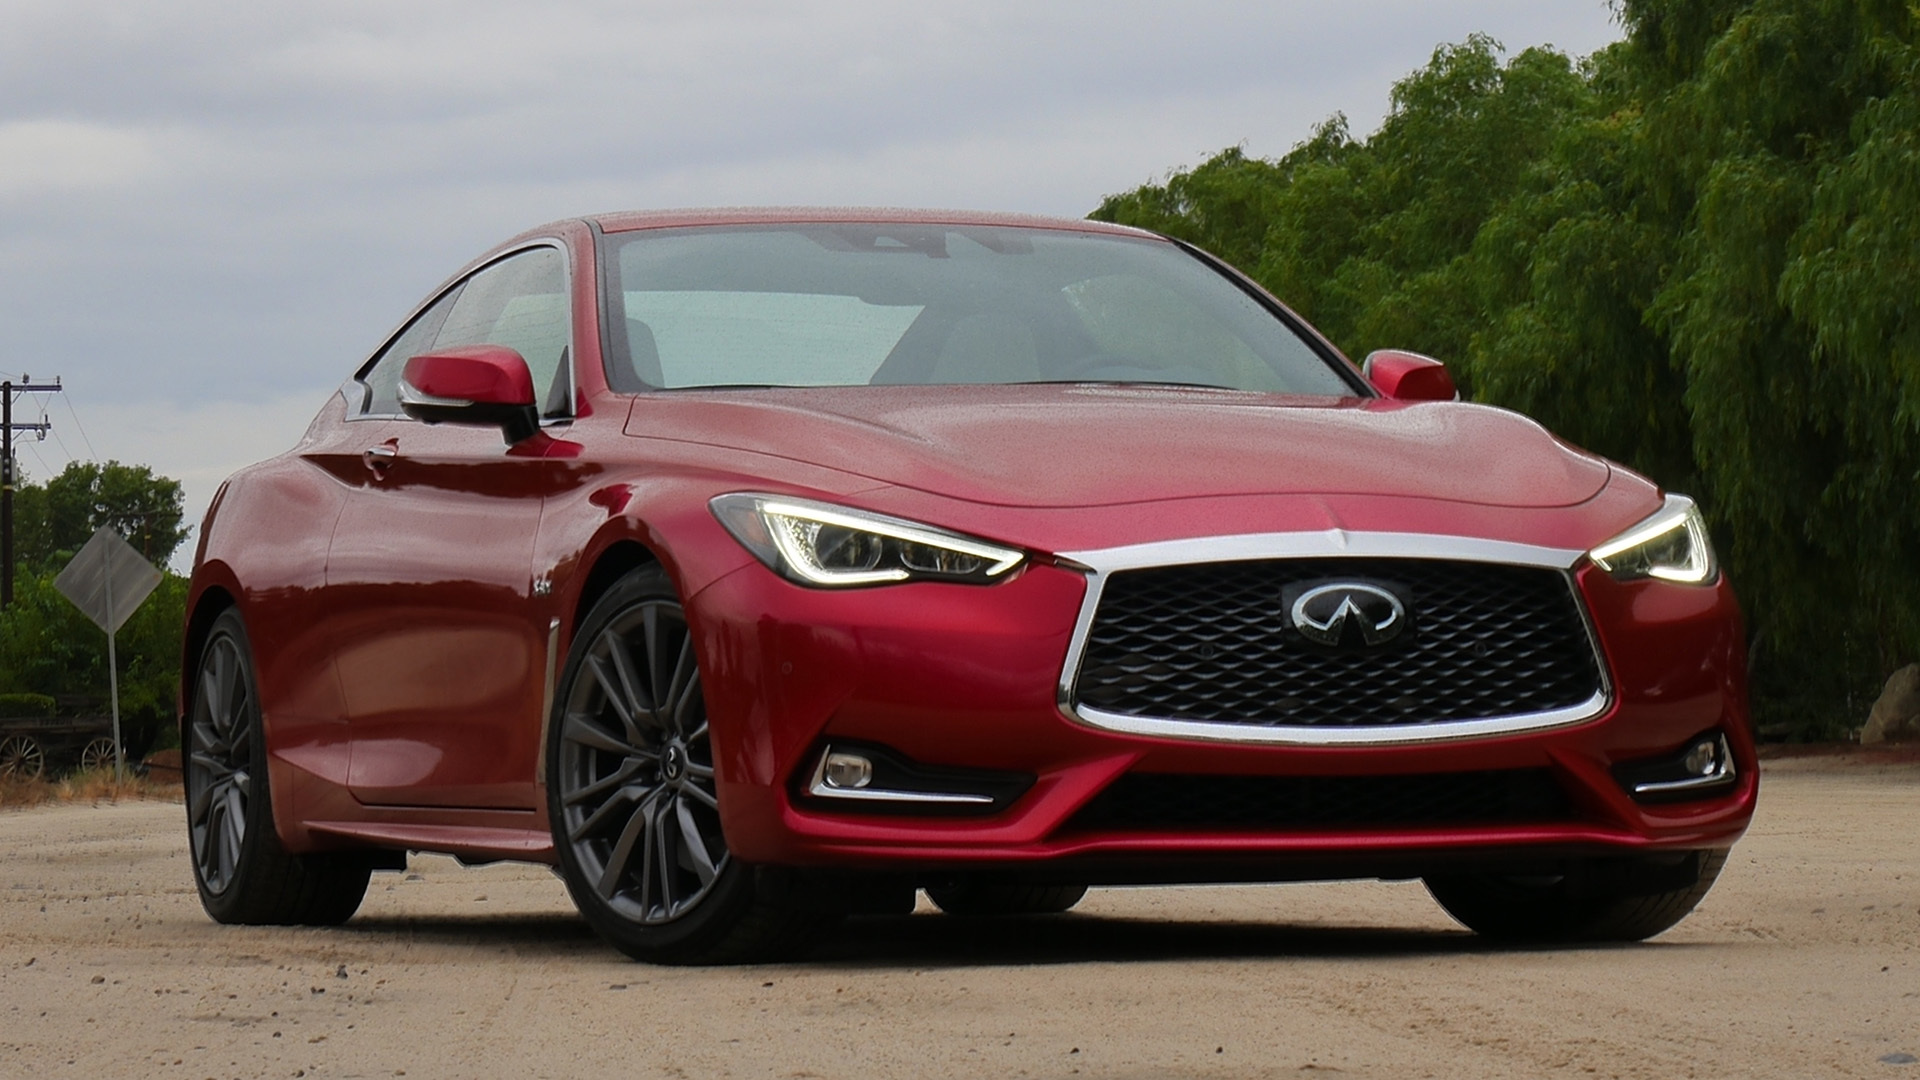 2017 Infiniti Q60 Red Exterior Front View (Photo 15 of 32)